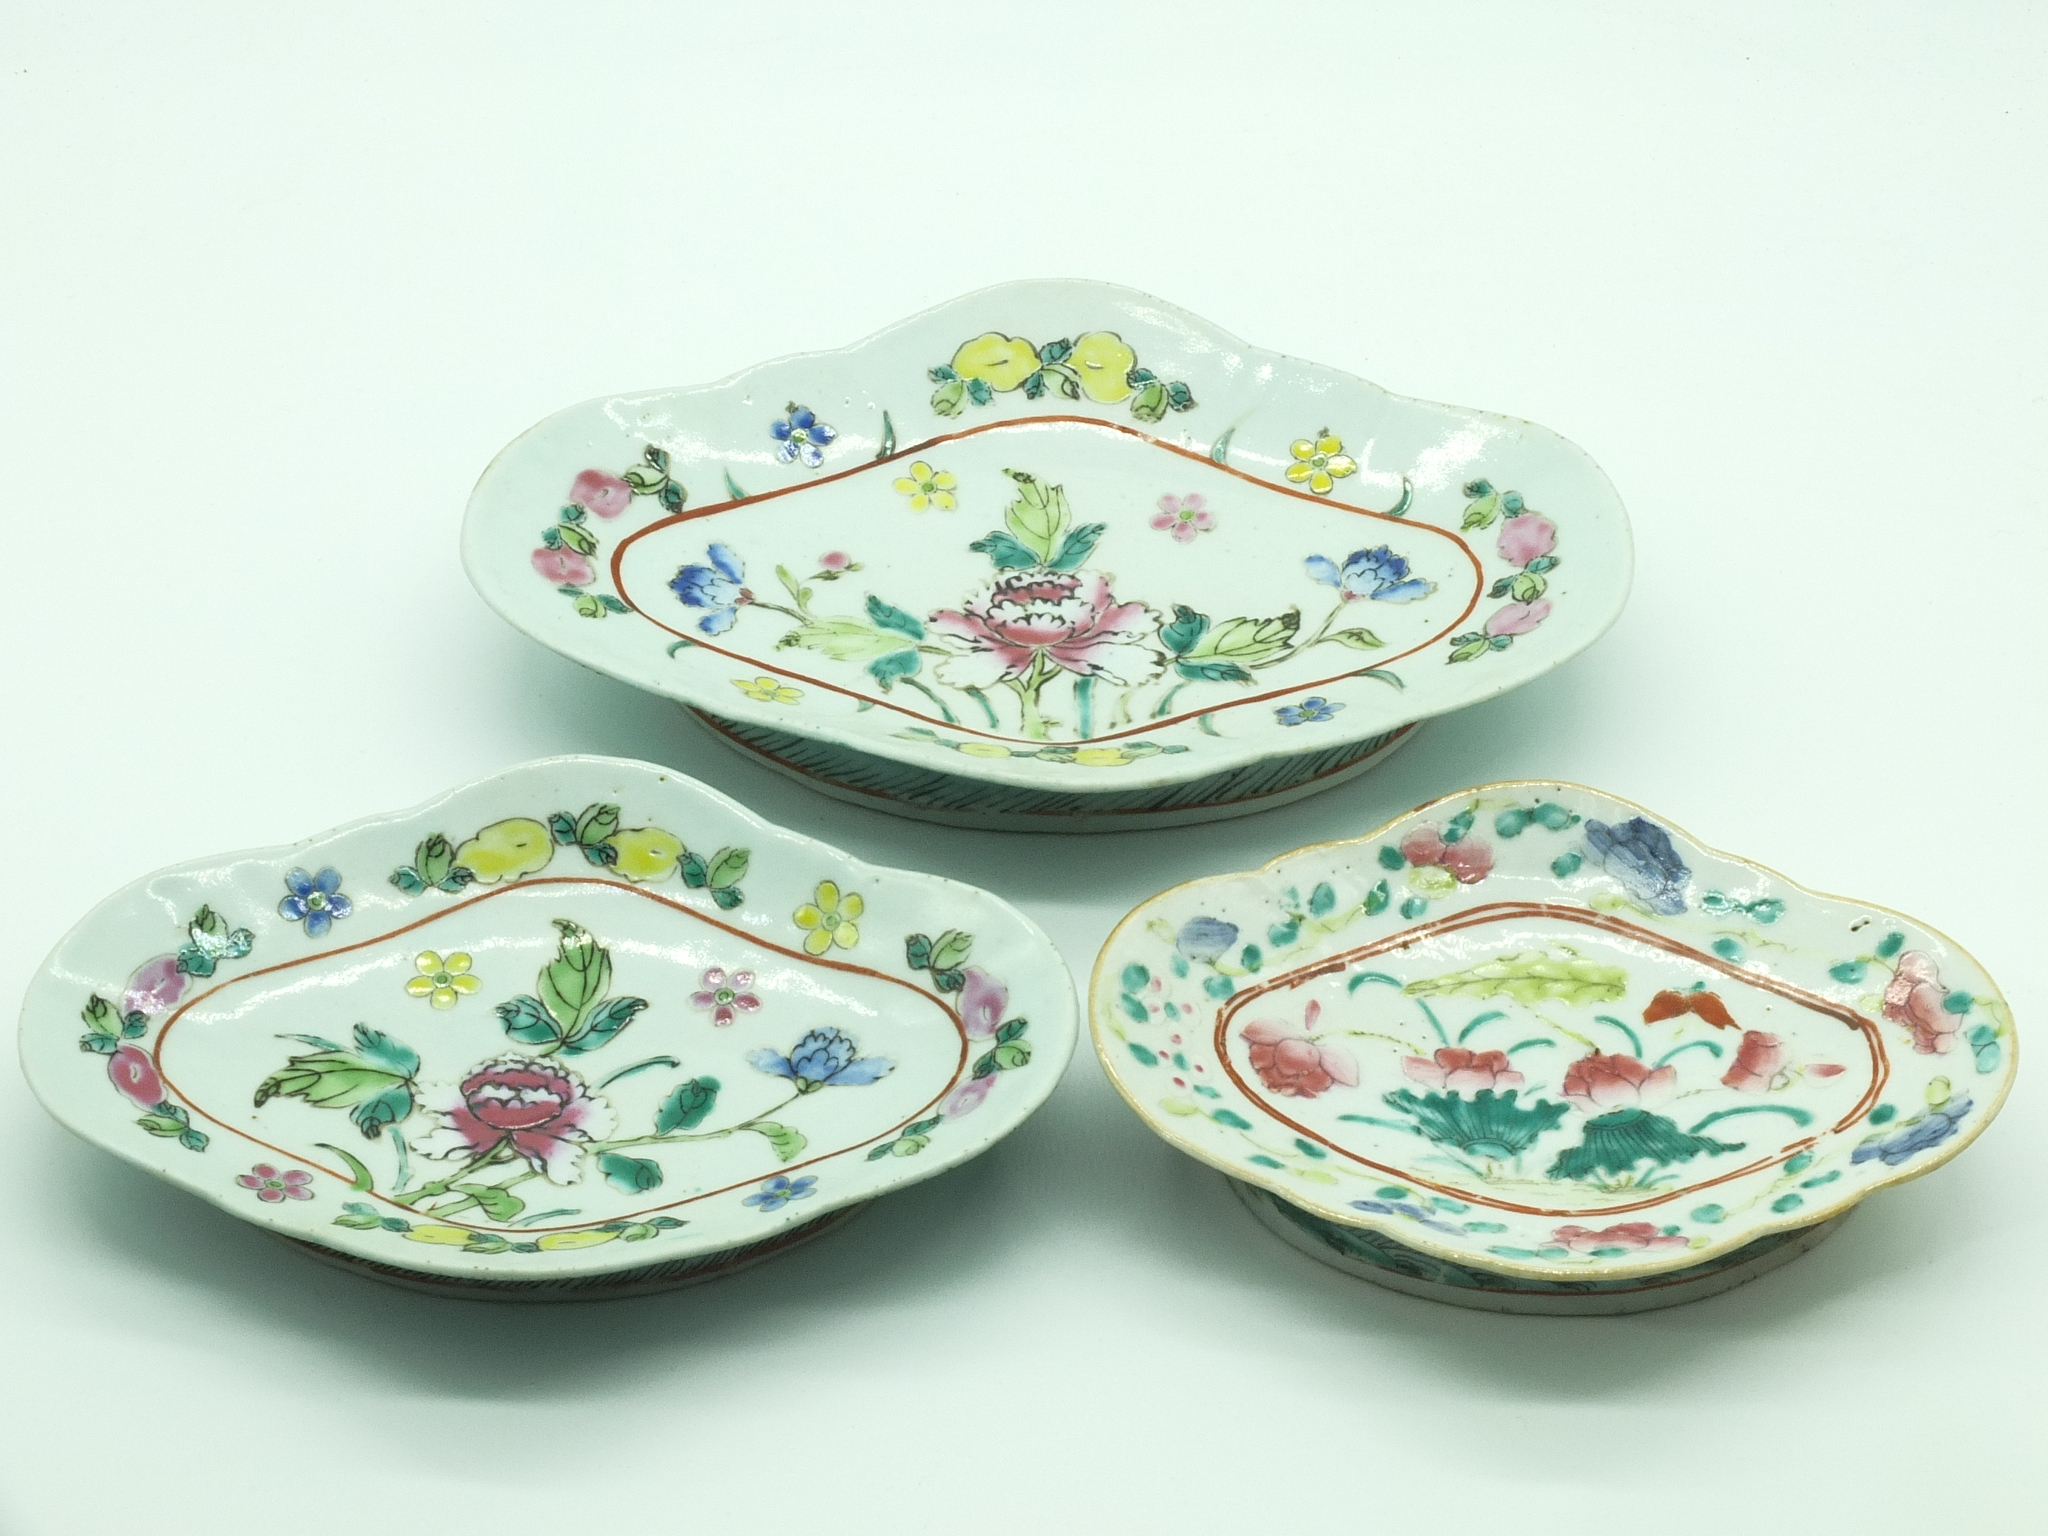 'Three Chinese Famille Rose Lobed Footed Dishes Late Qing, 19th Century'